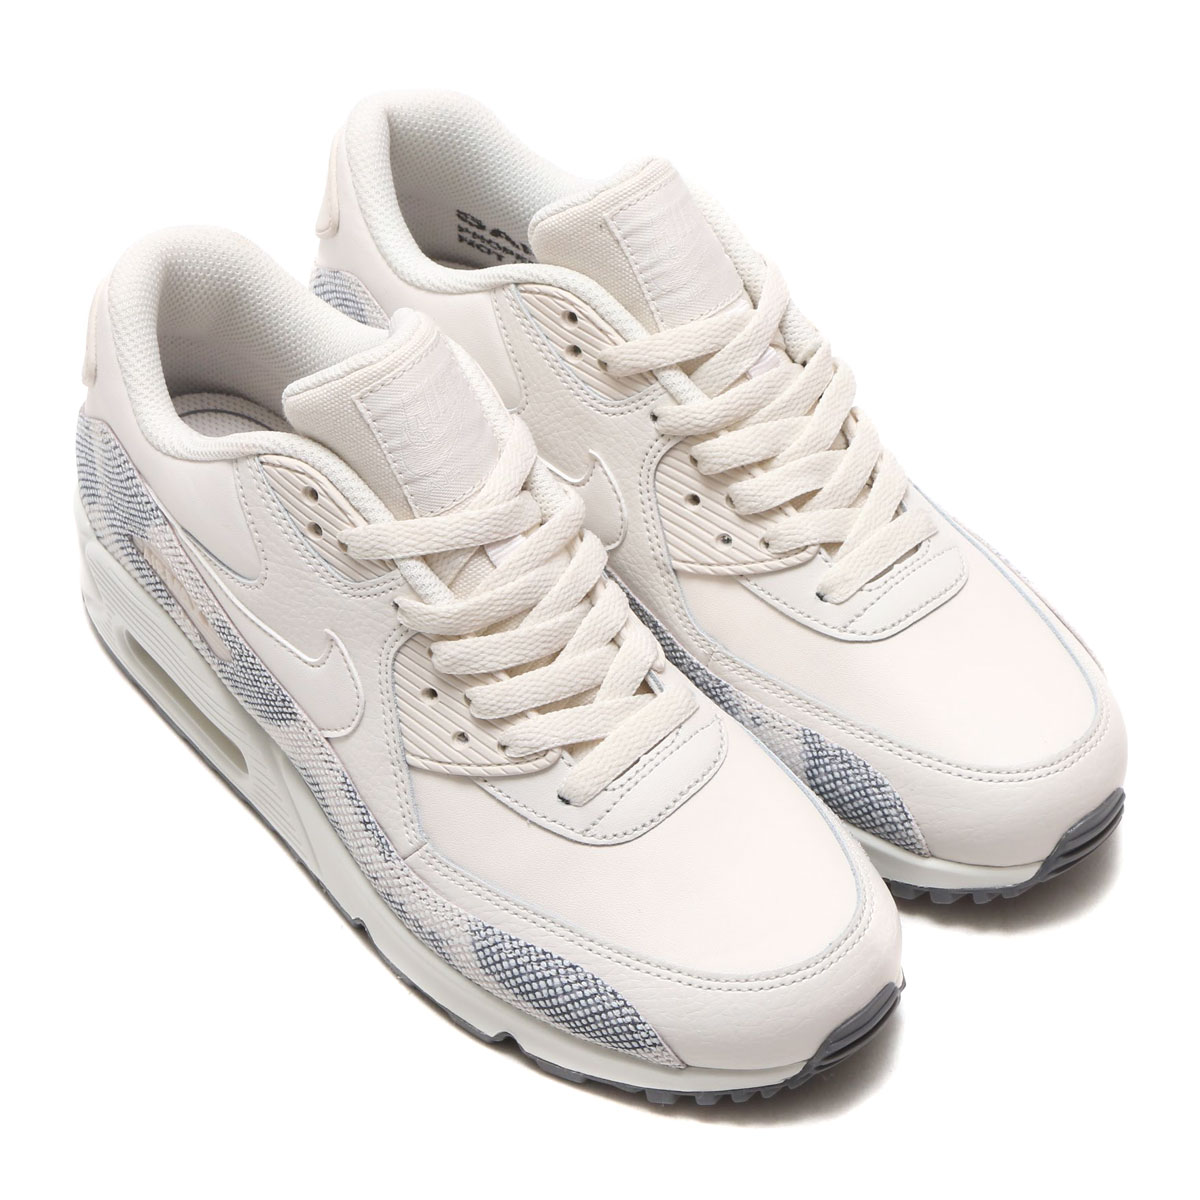 NIKE WMNS AIR MAX 90 PRM (Nike women Air Max 90 premium)  (PHANTOM PHANTOM-GUNSMOKE-SUMMIT WHITE) 17HO-S 789c1ba3a